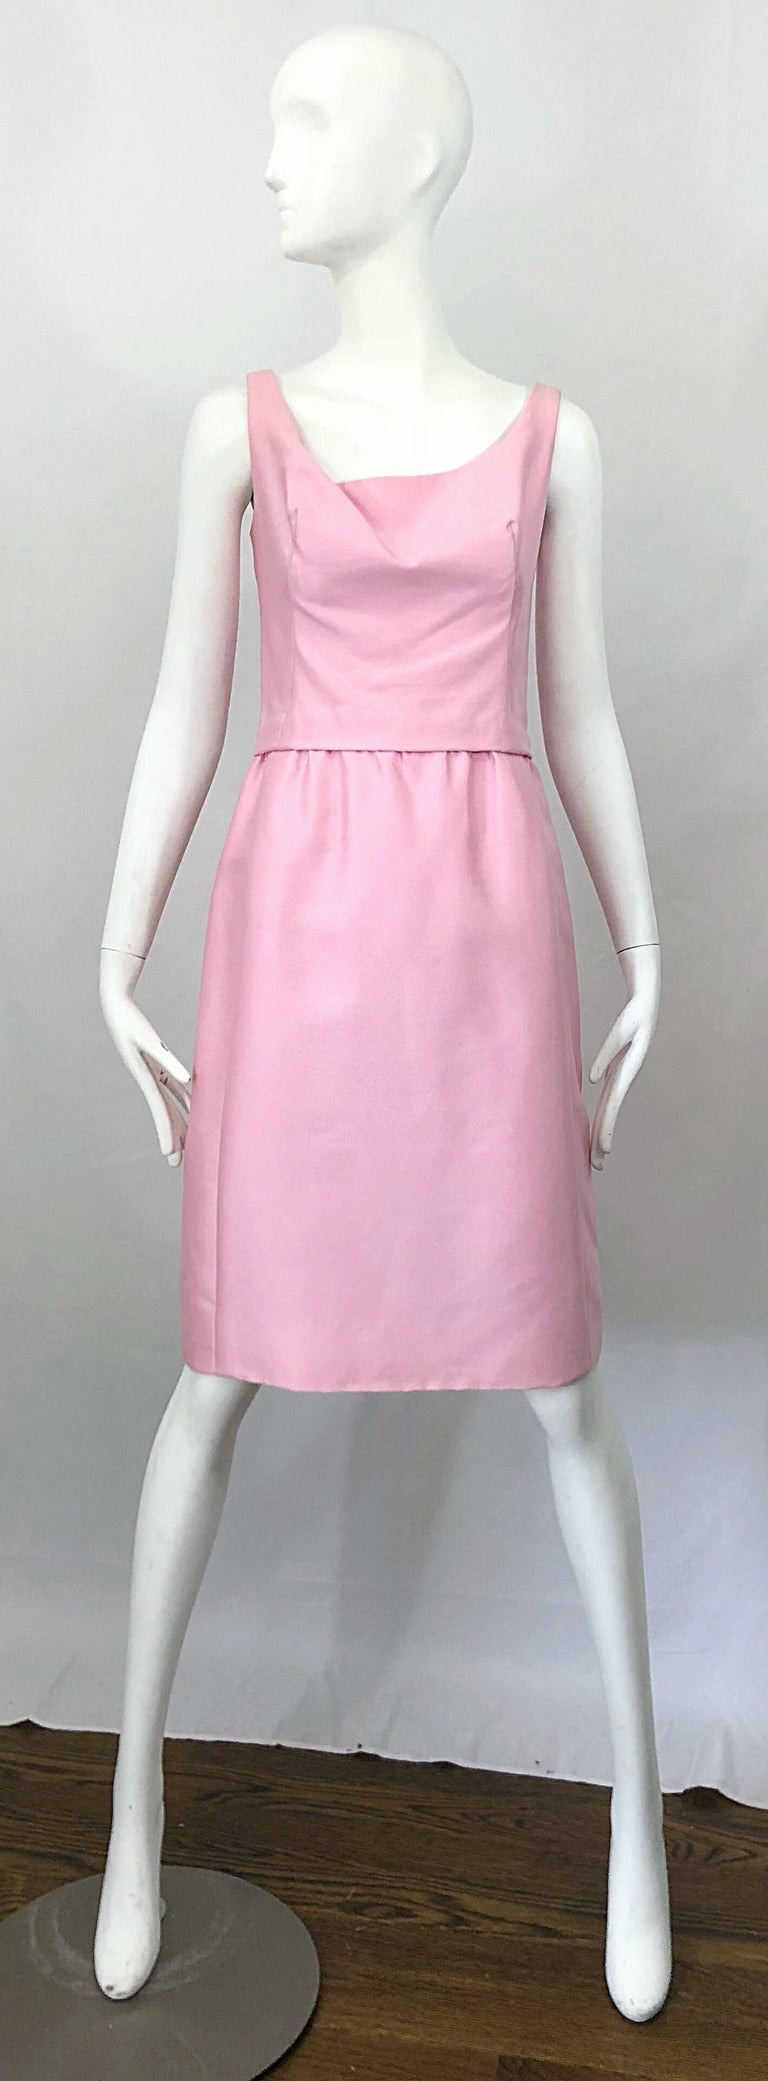 Chic 1960s PAT SANDLER light pink silk shift dress and jacket ensemble!!! Dress is sleeveless with a draped tailored bodice and forgiving fuller skirt. Full metal zipper up the back with  hook-and-eye closure. Pillbox jacket has a bow at center